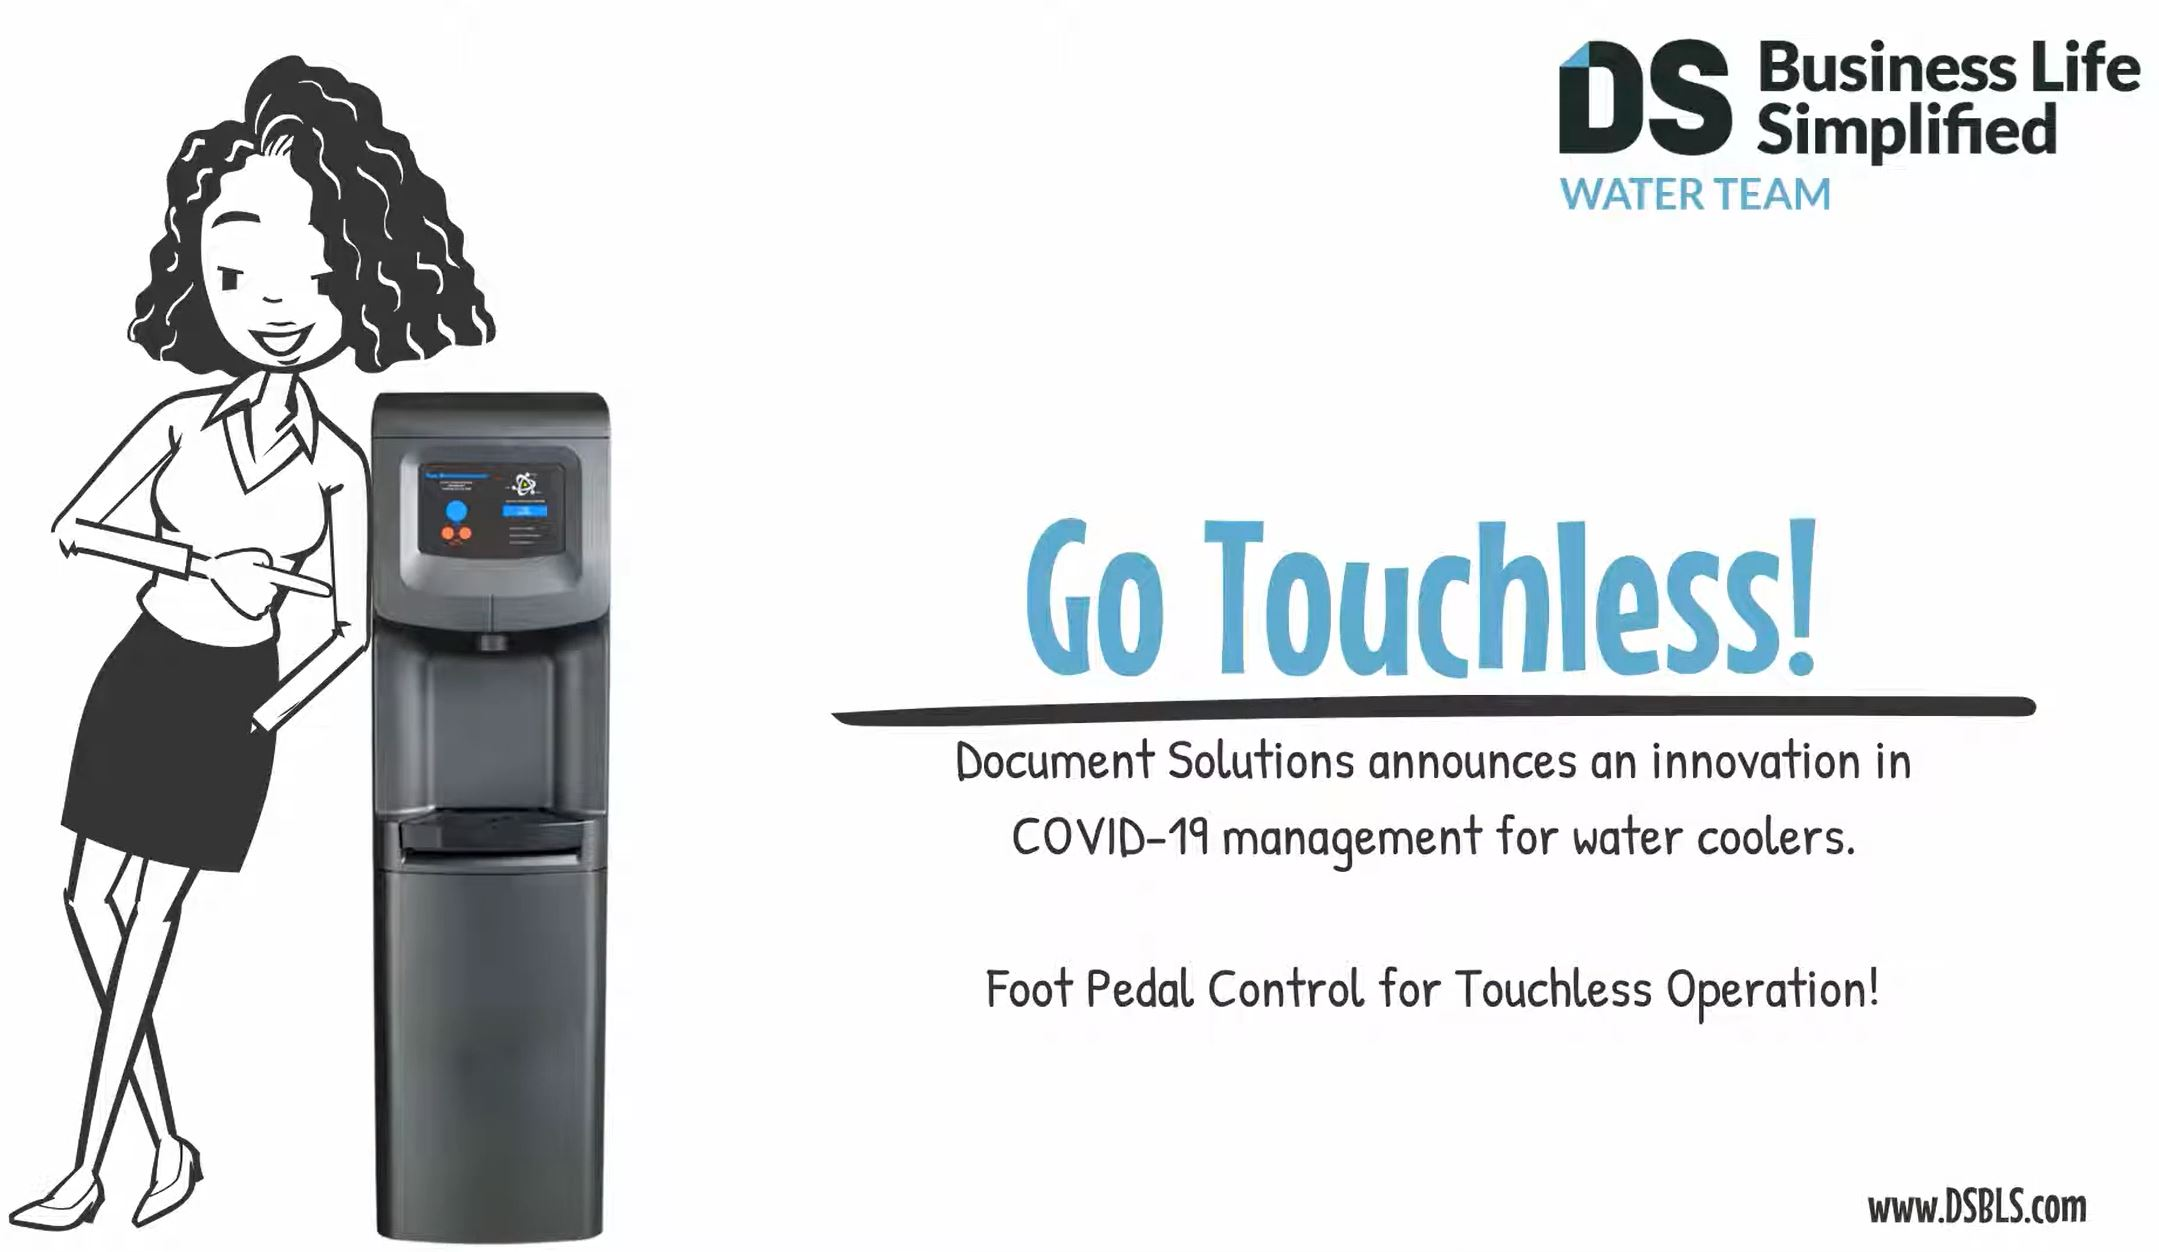 DS GOTOUCHLESS